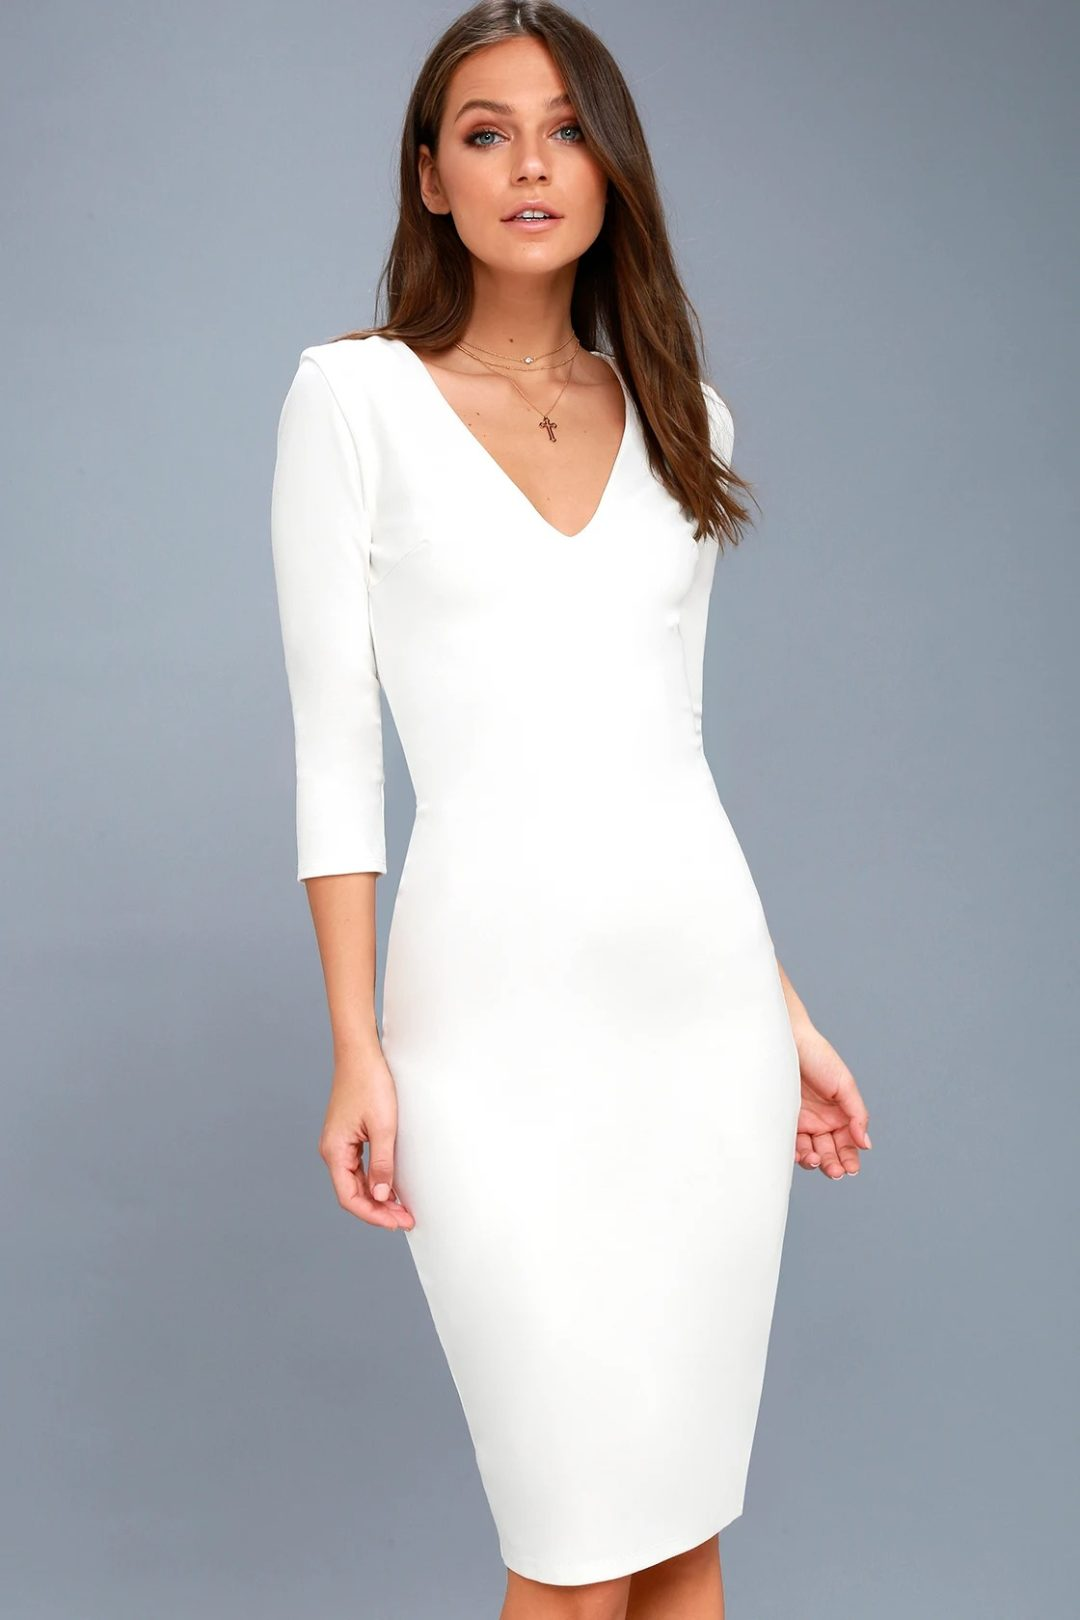 What To Wear To A Celebration Of Life: Simple white bodycon dress